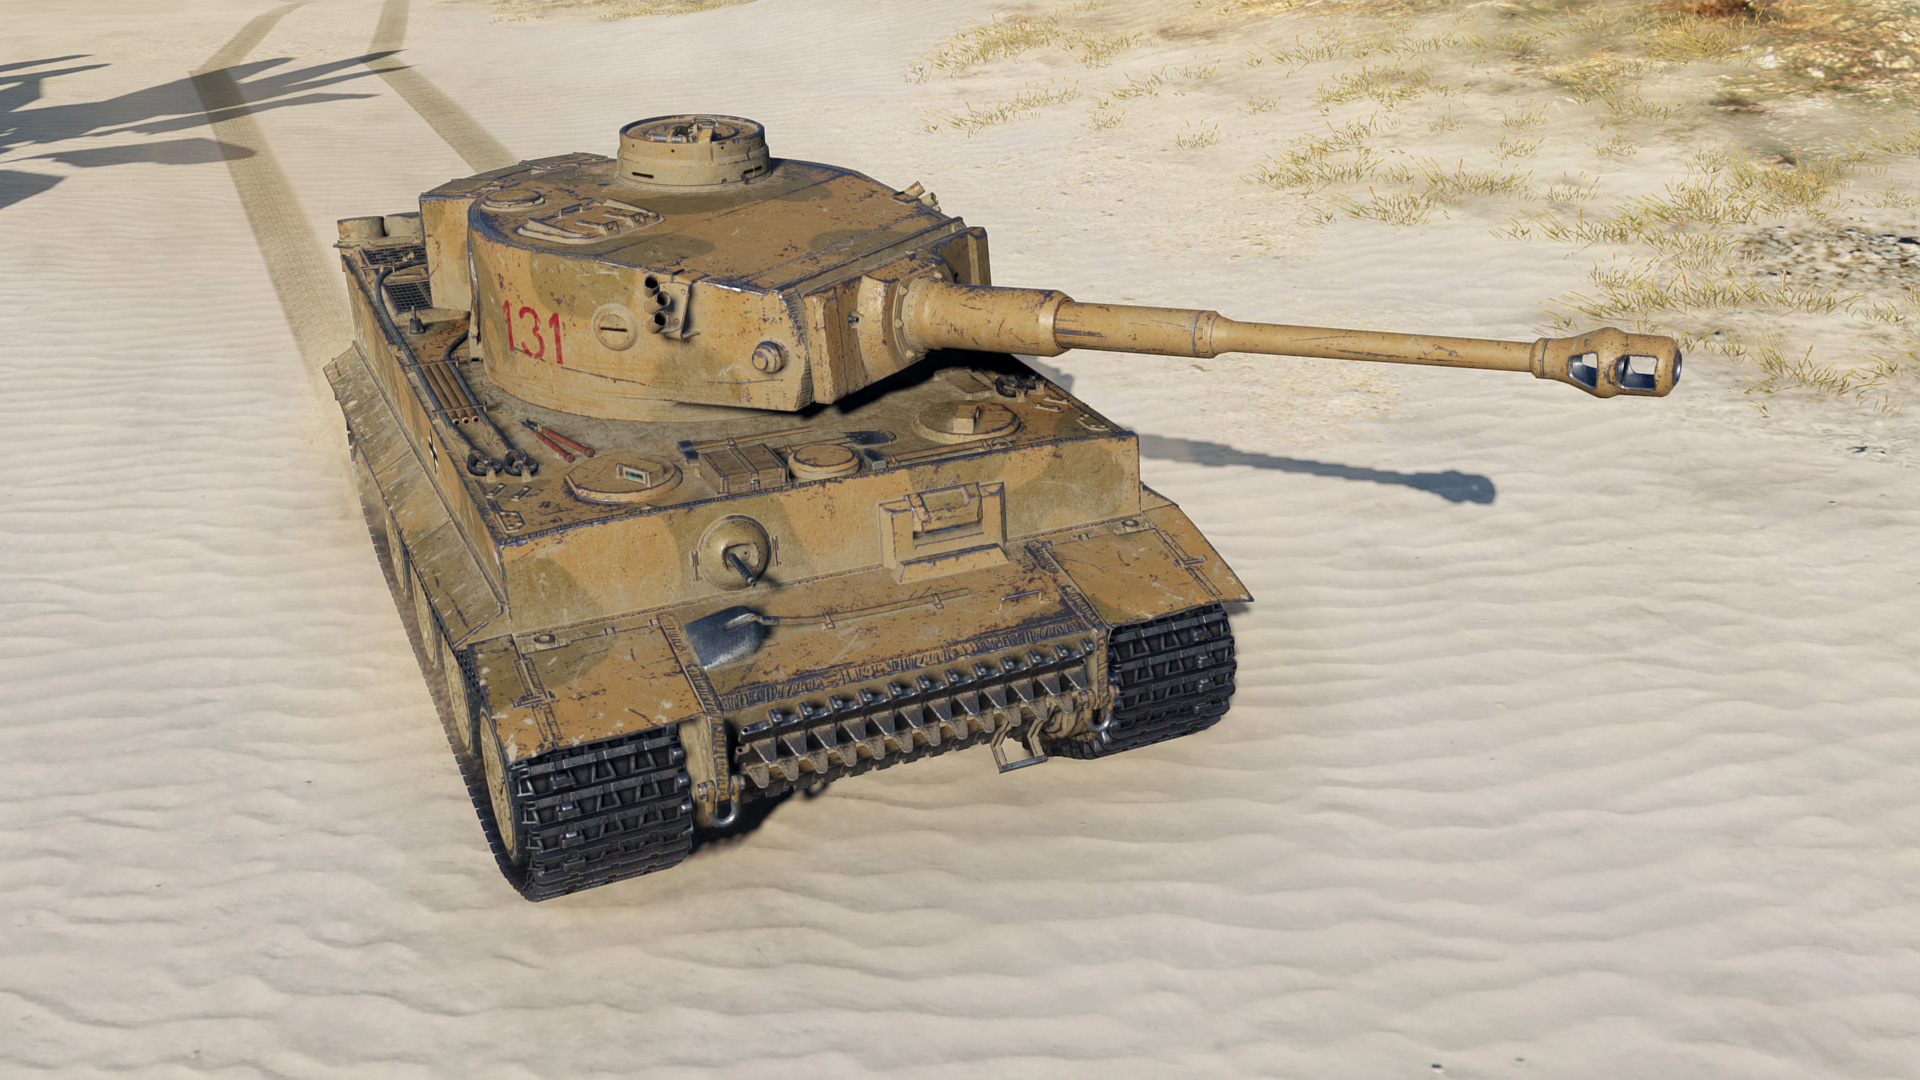 The Tiger 131 comes with the Brothers in Arms Crew, which is a main selling point.